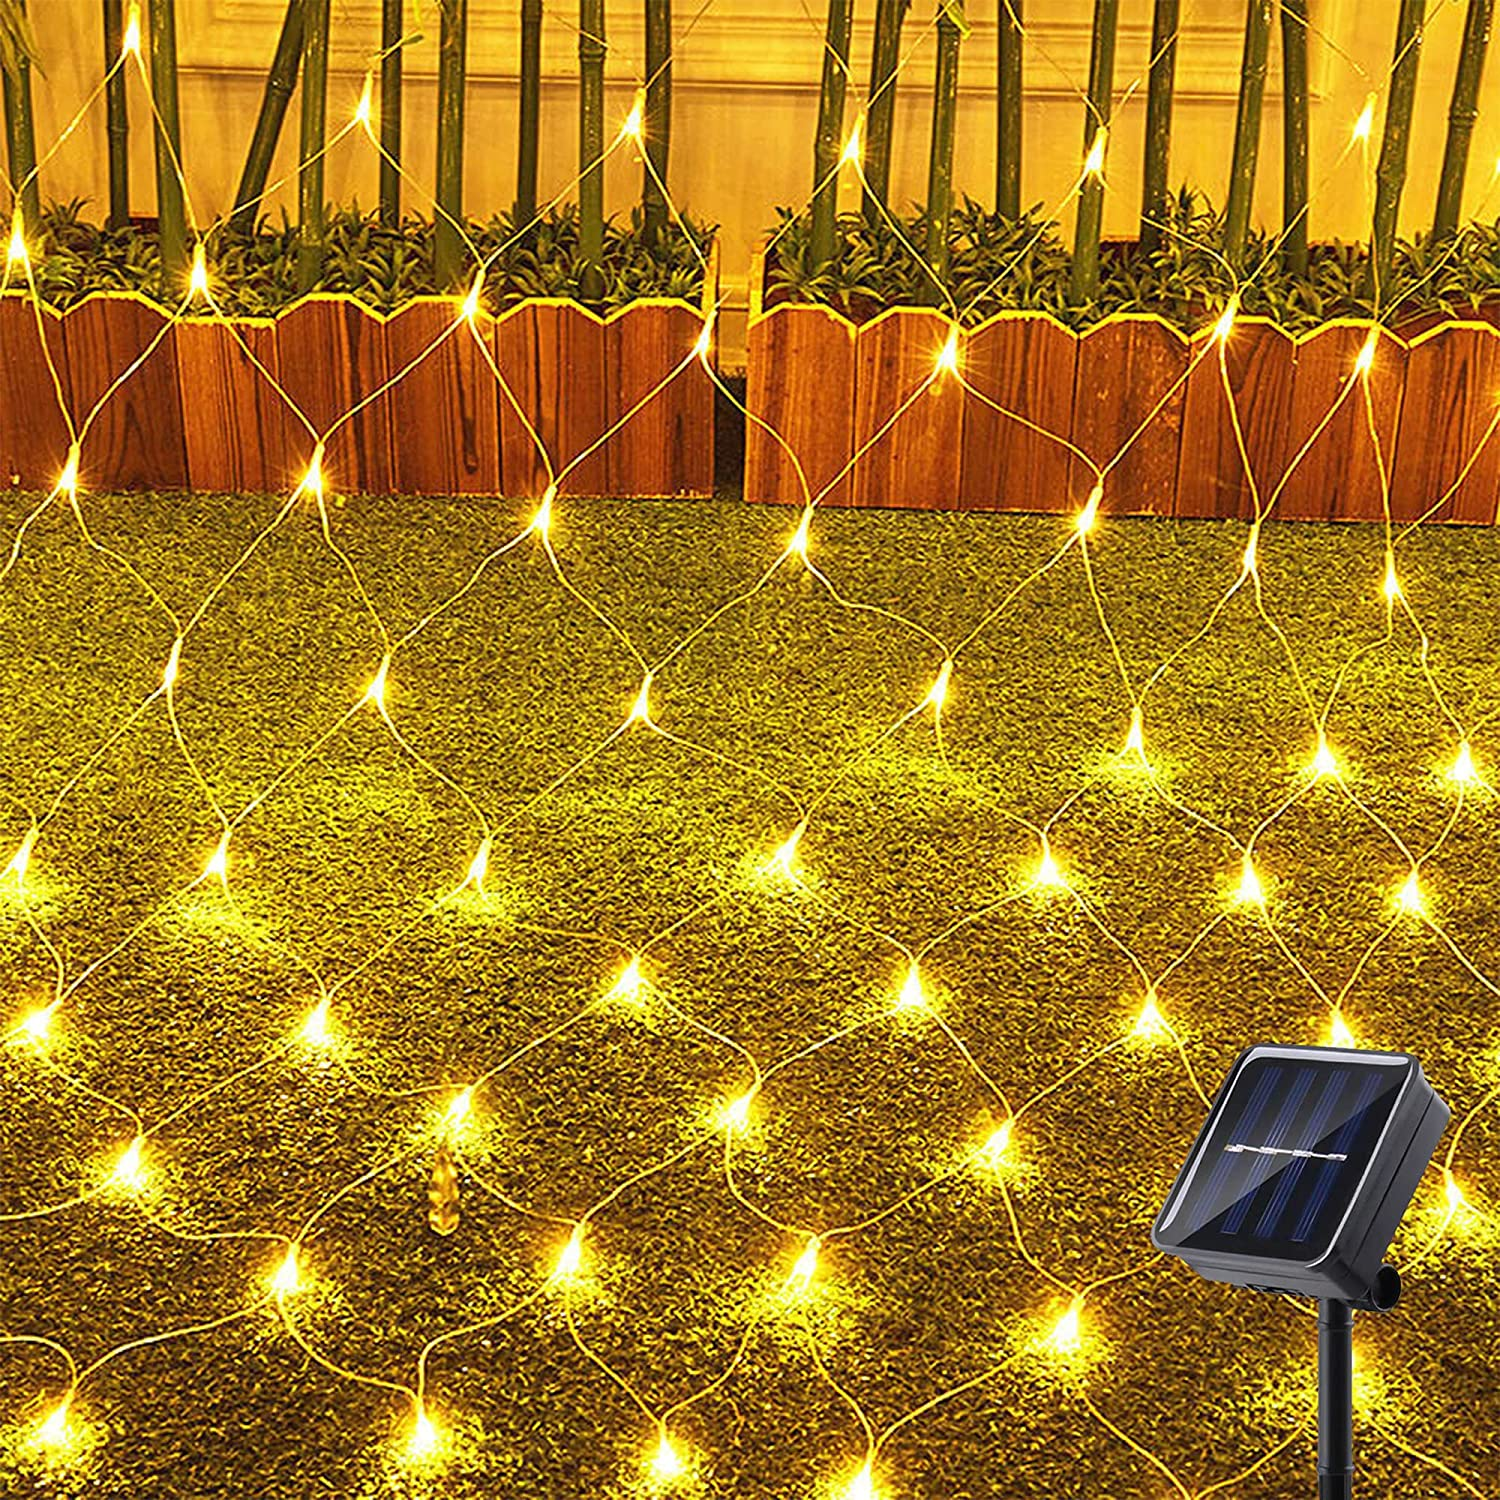 KNONEW 200 LED Solar Net Lights, 8 Modes 9.8ft x 6.6ft Upgraded Super Durable Tree Wrap Mesh Fairy Twinkle Lights Outdoor for Wedding, Patio, Garden, Yard, Party, Fence, Porch, Tree, Roof (Warm White)